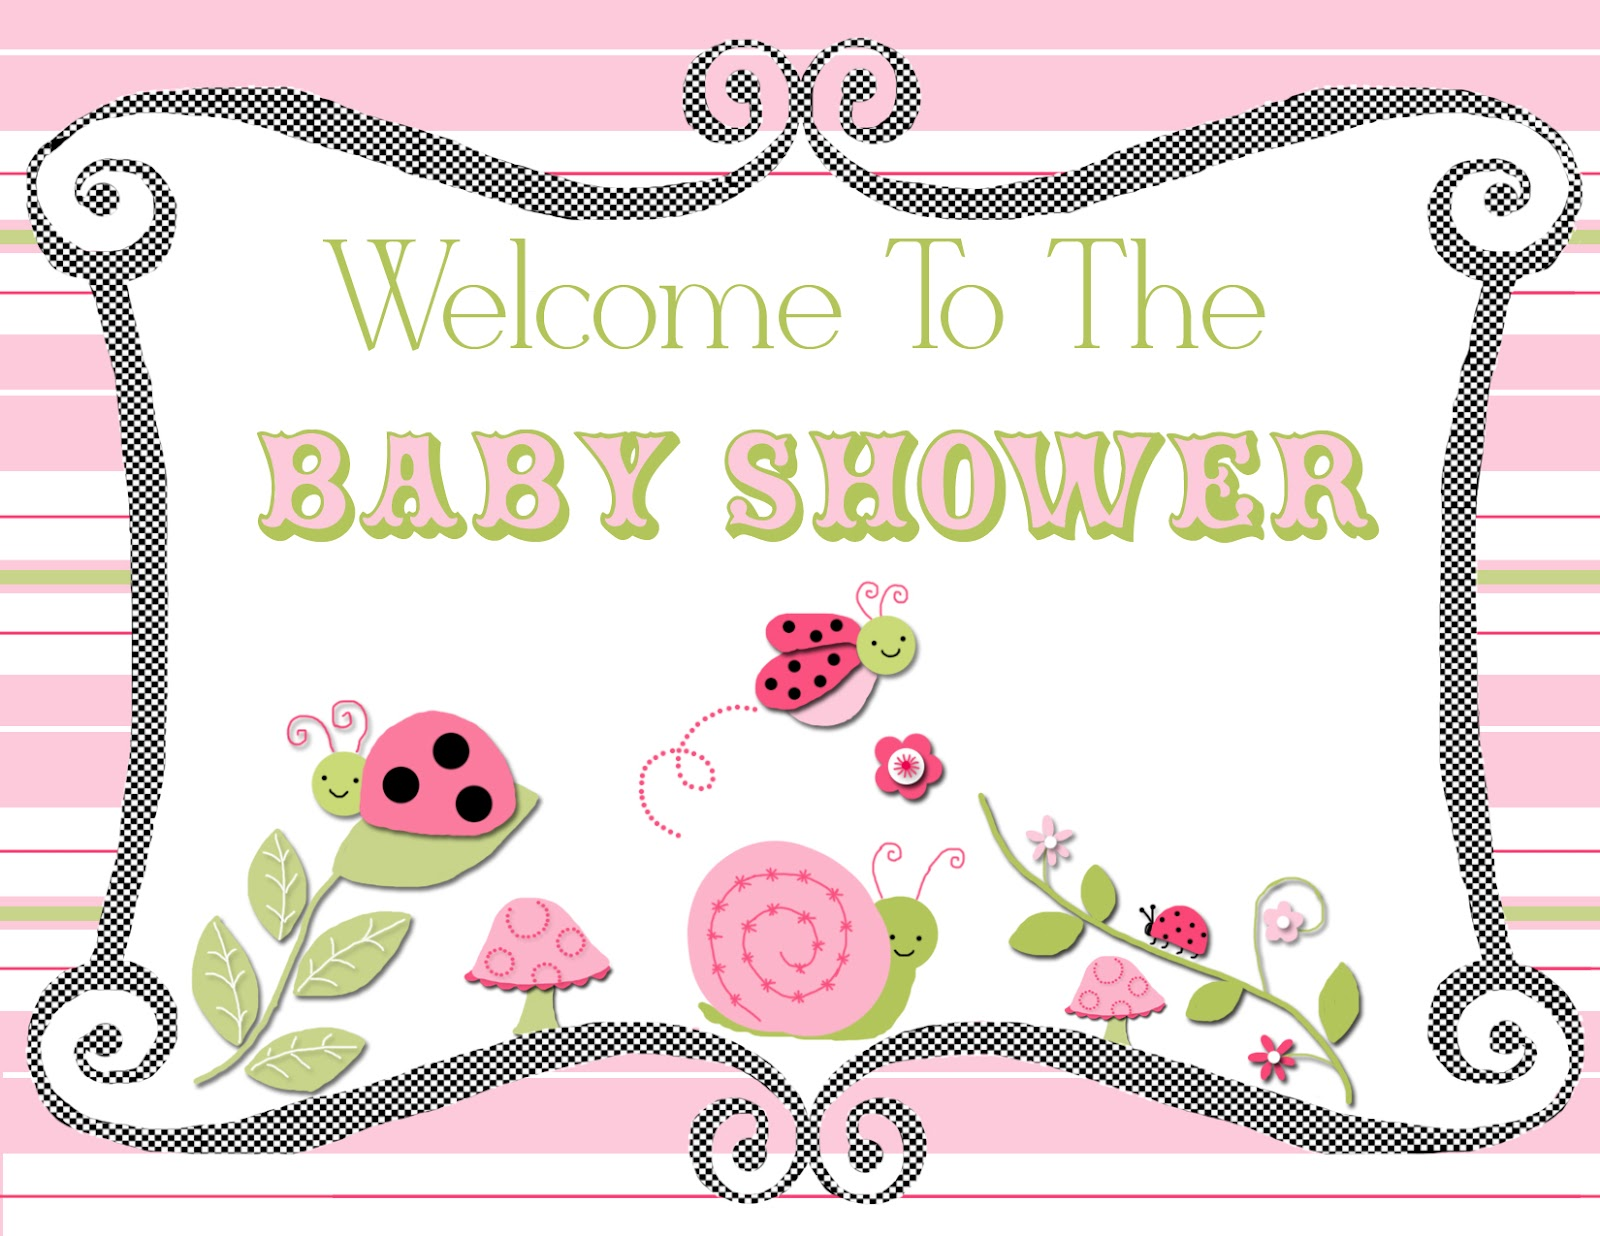 Full Size of Baby Shower:89+ Indulging Baby Shower Banner Picture Inspirations Baby Shower Banner Baby Shower Venues London Baby Shower Drinks Baby Shower Food Martha Stewart Baby Shower Shower Baby My Baby Shower Baby Shower Signs Decoration Baby Shower Signs Printable Baby Shower